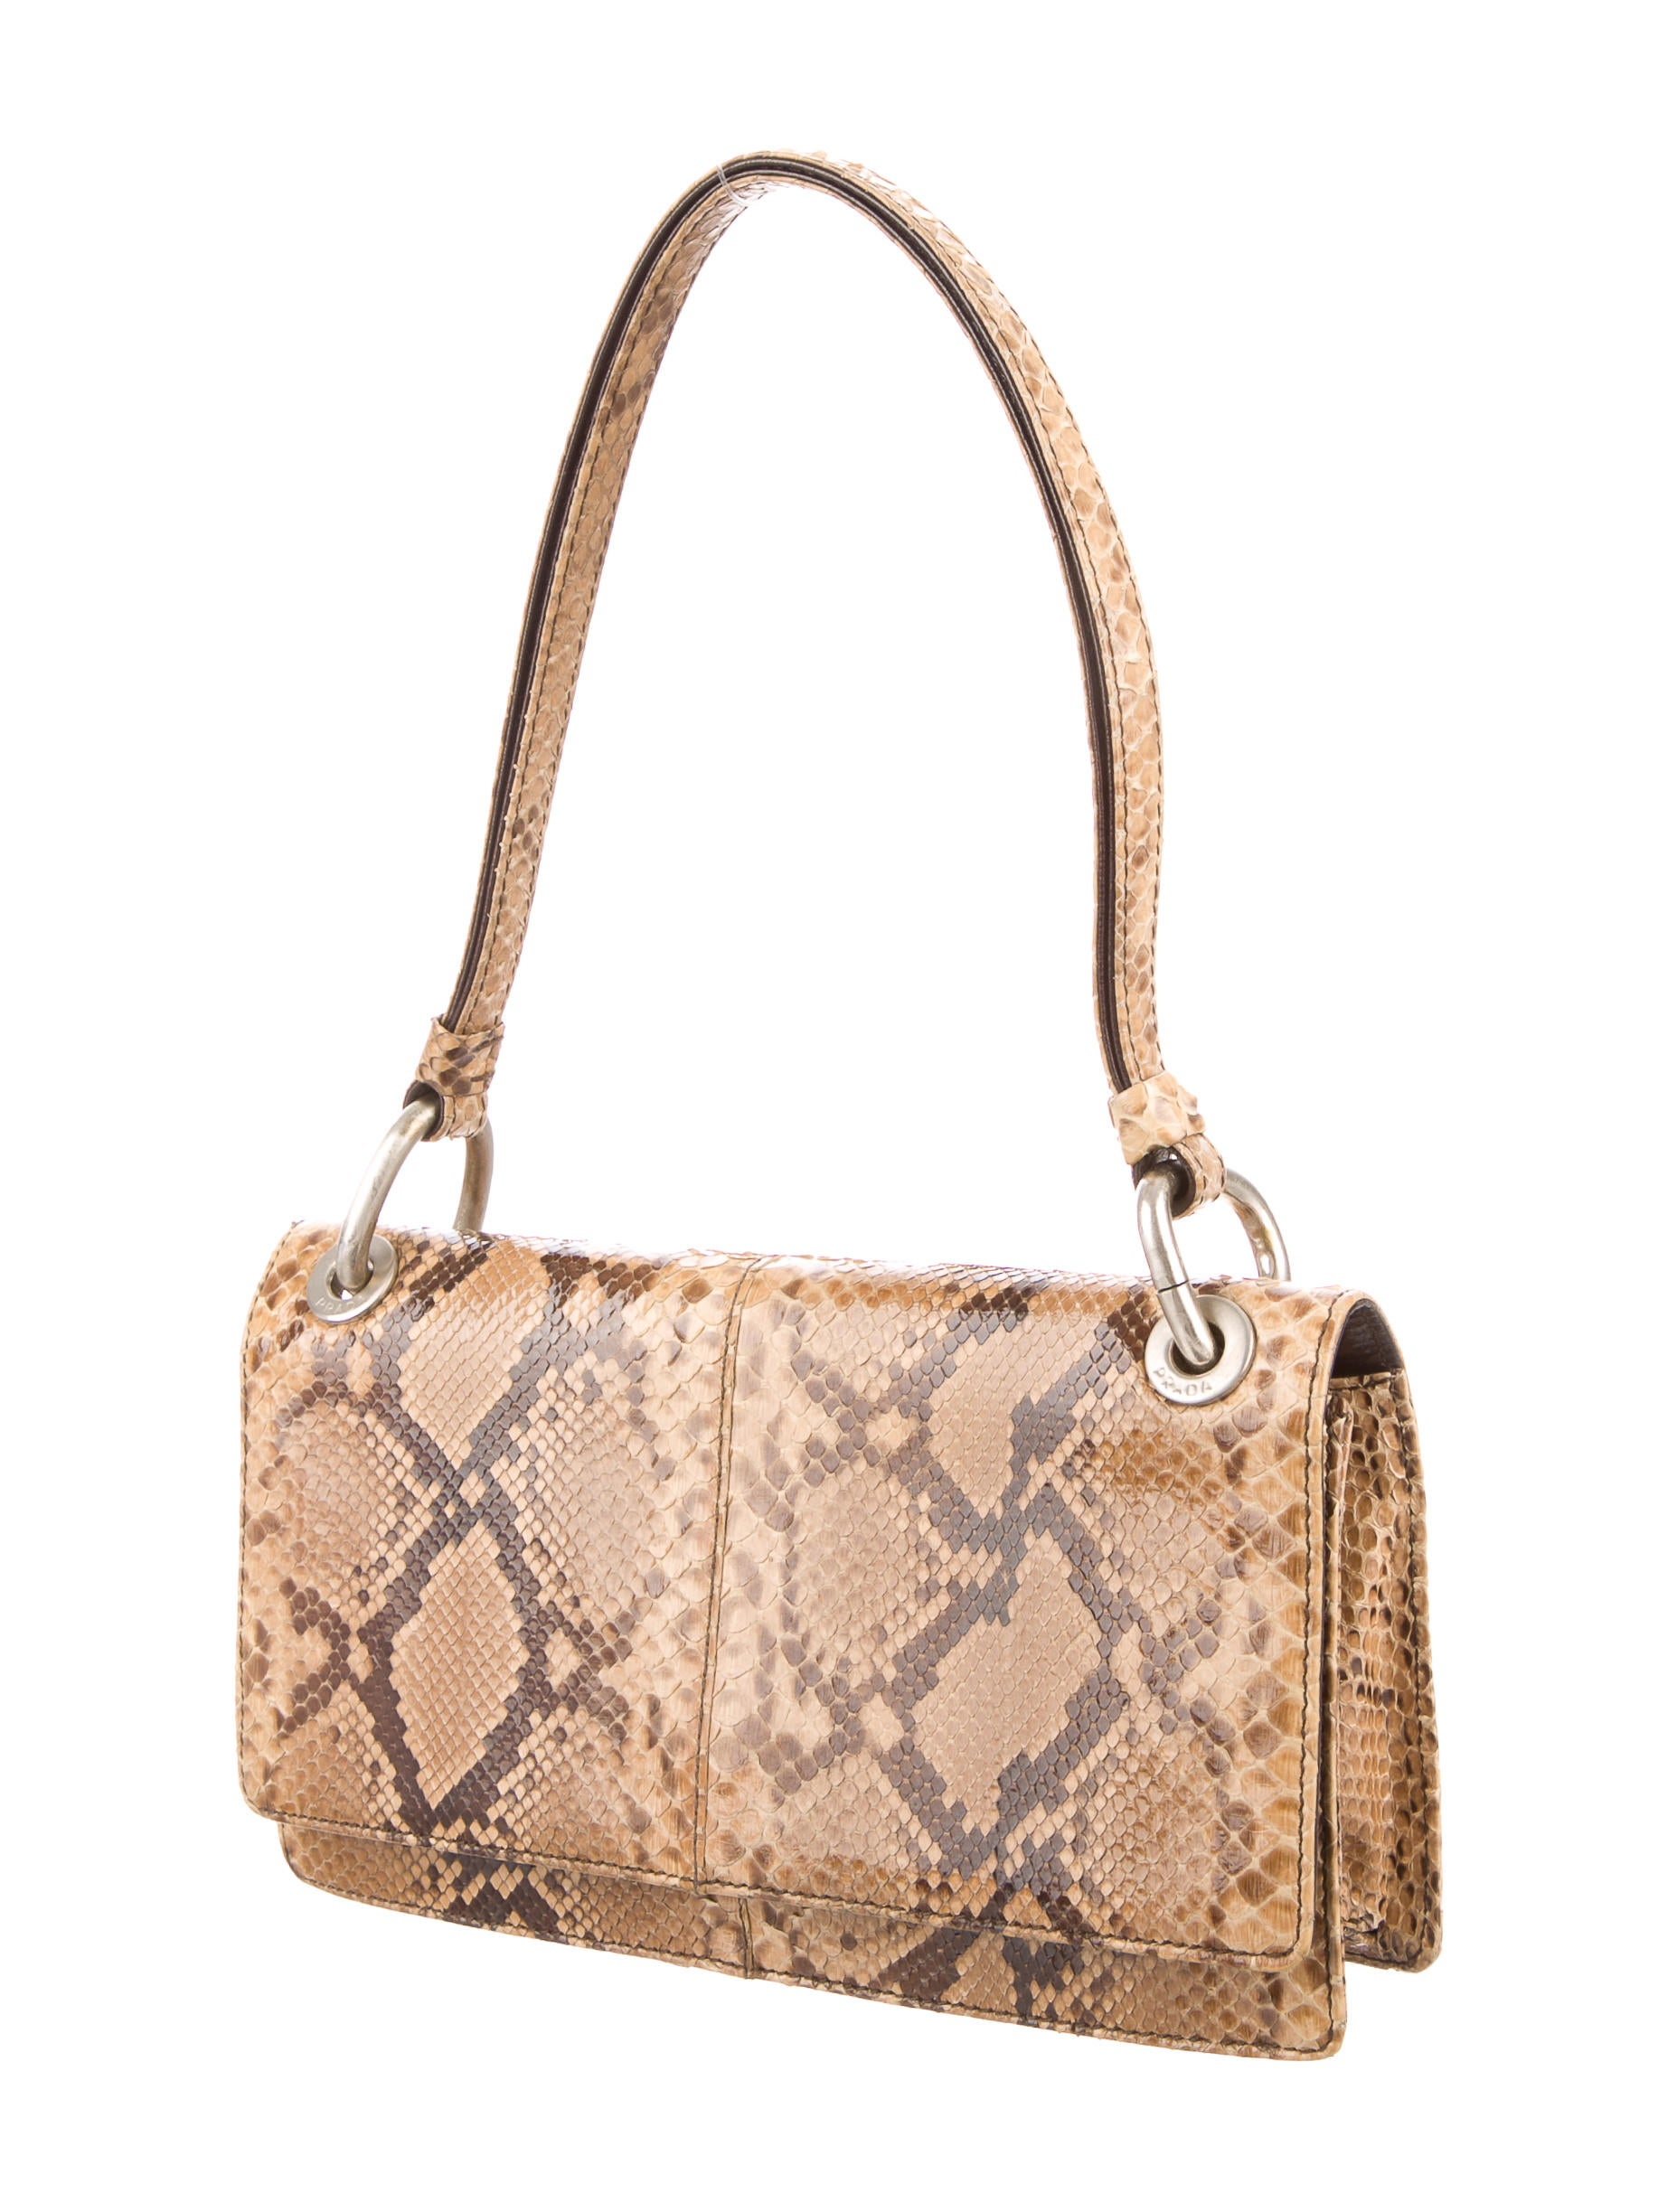 prada handbags for sale online - prada python handlebag, prada crossbody bag leather